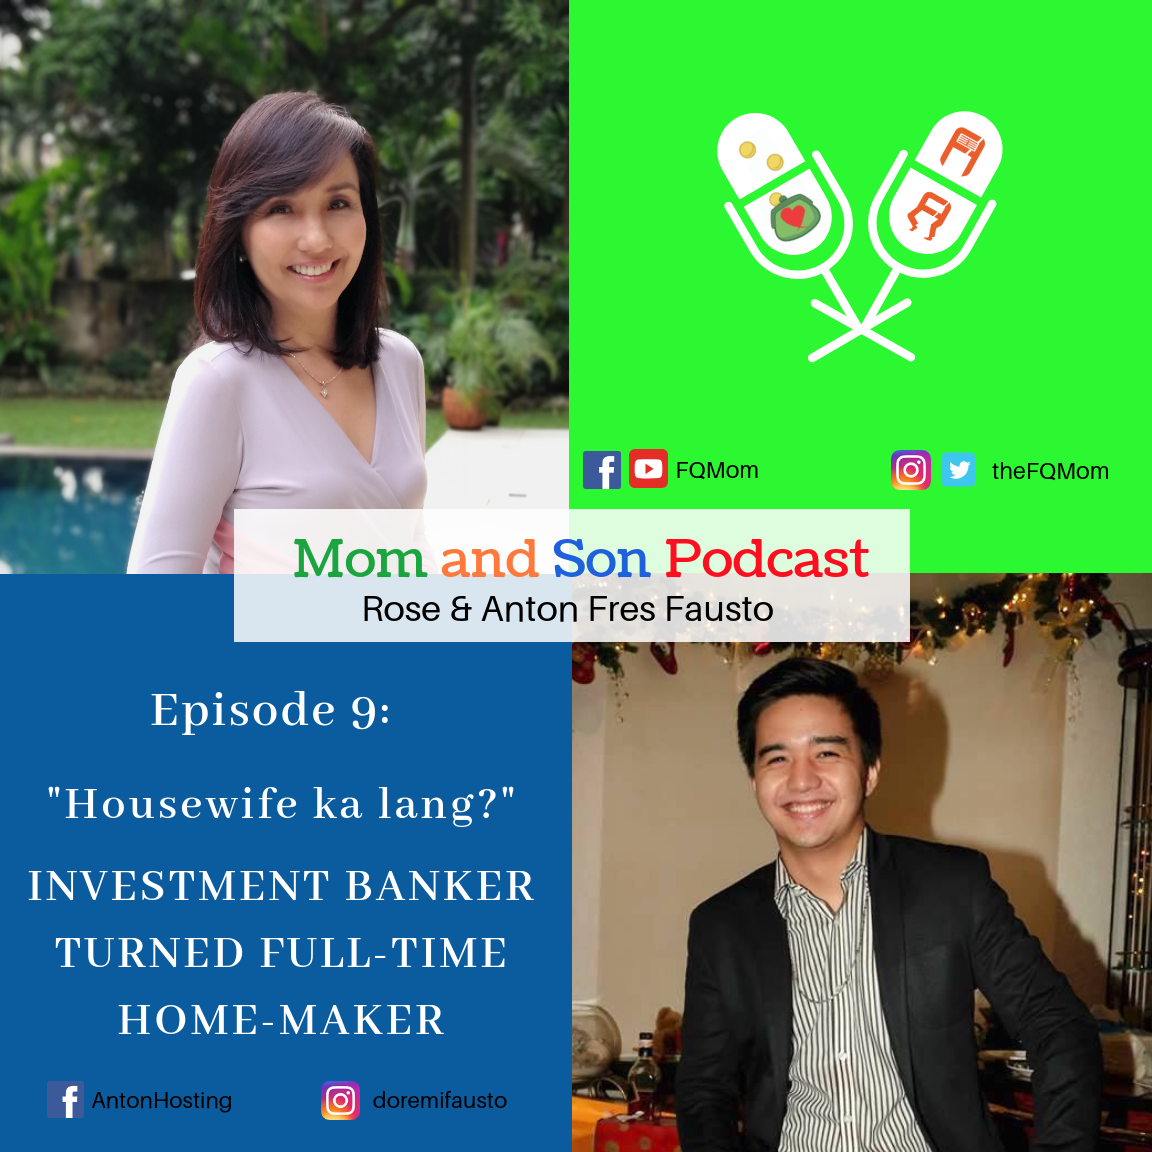 mom-and-son-podcast-9